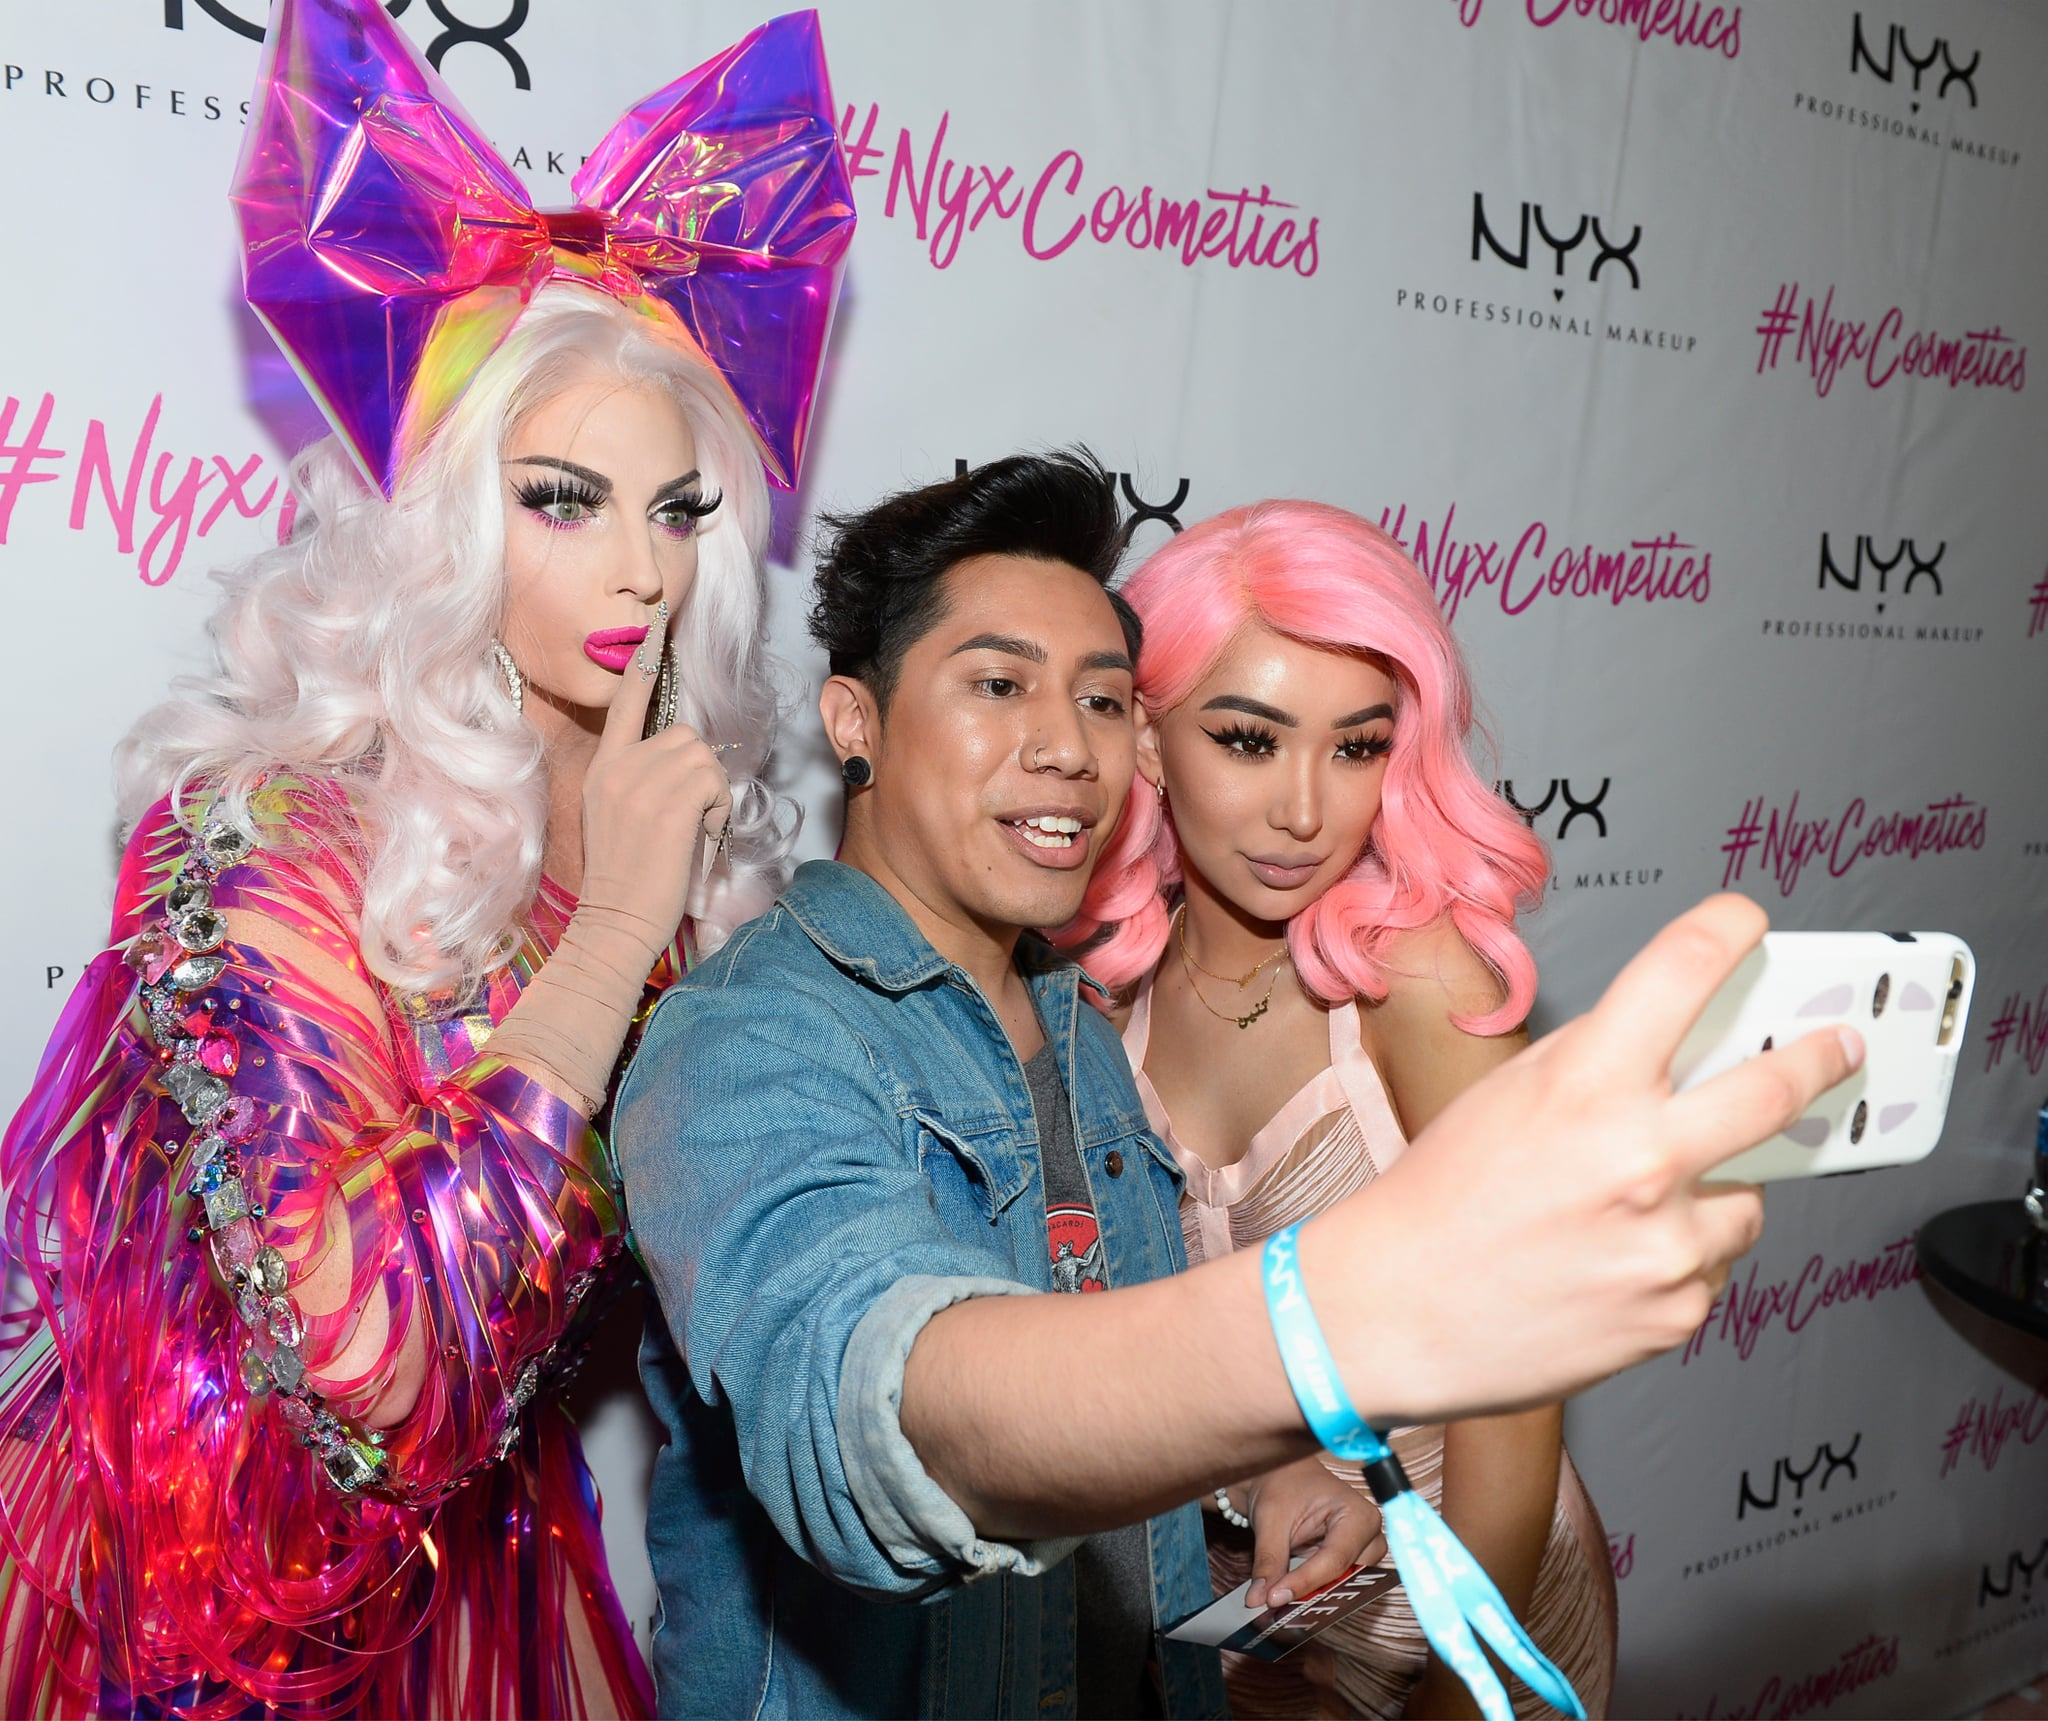 How NYX Became THE Mass Brand at the Top of the Social Media Hierarchy